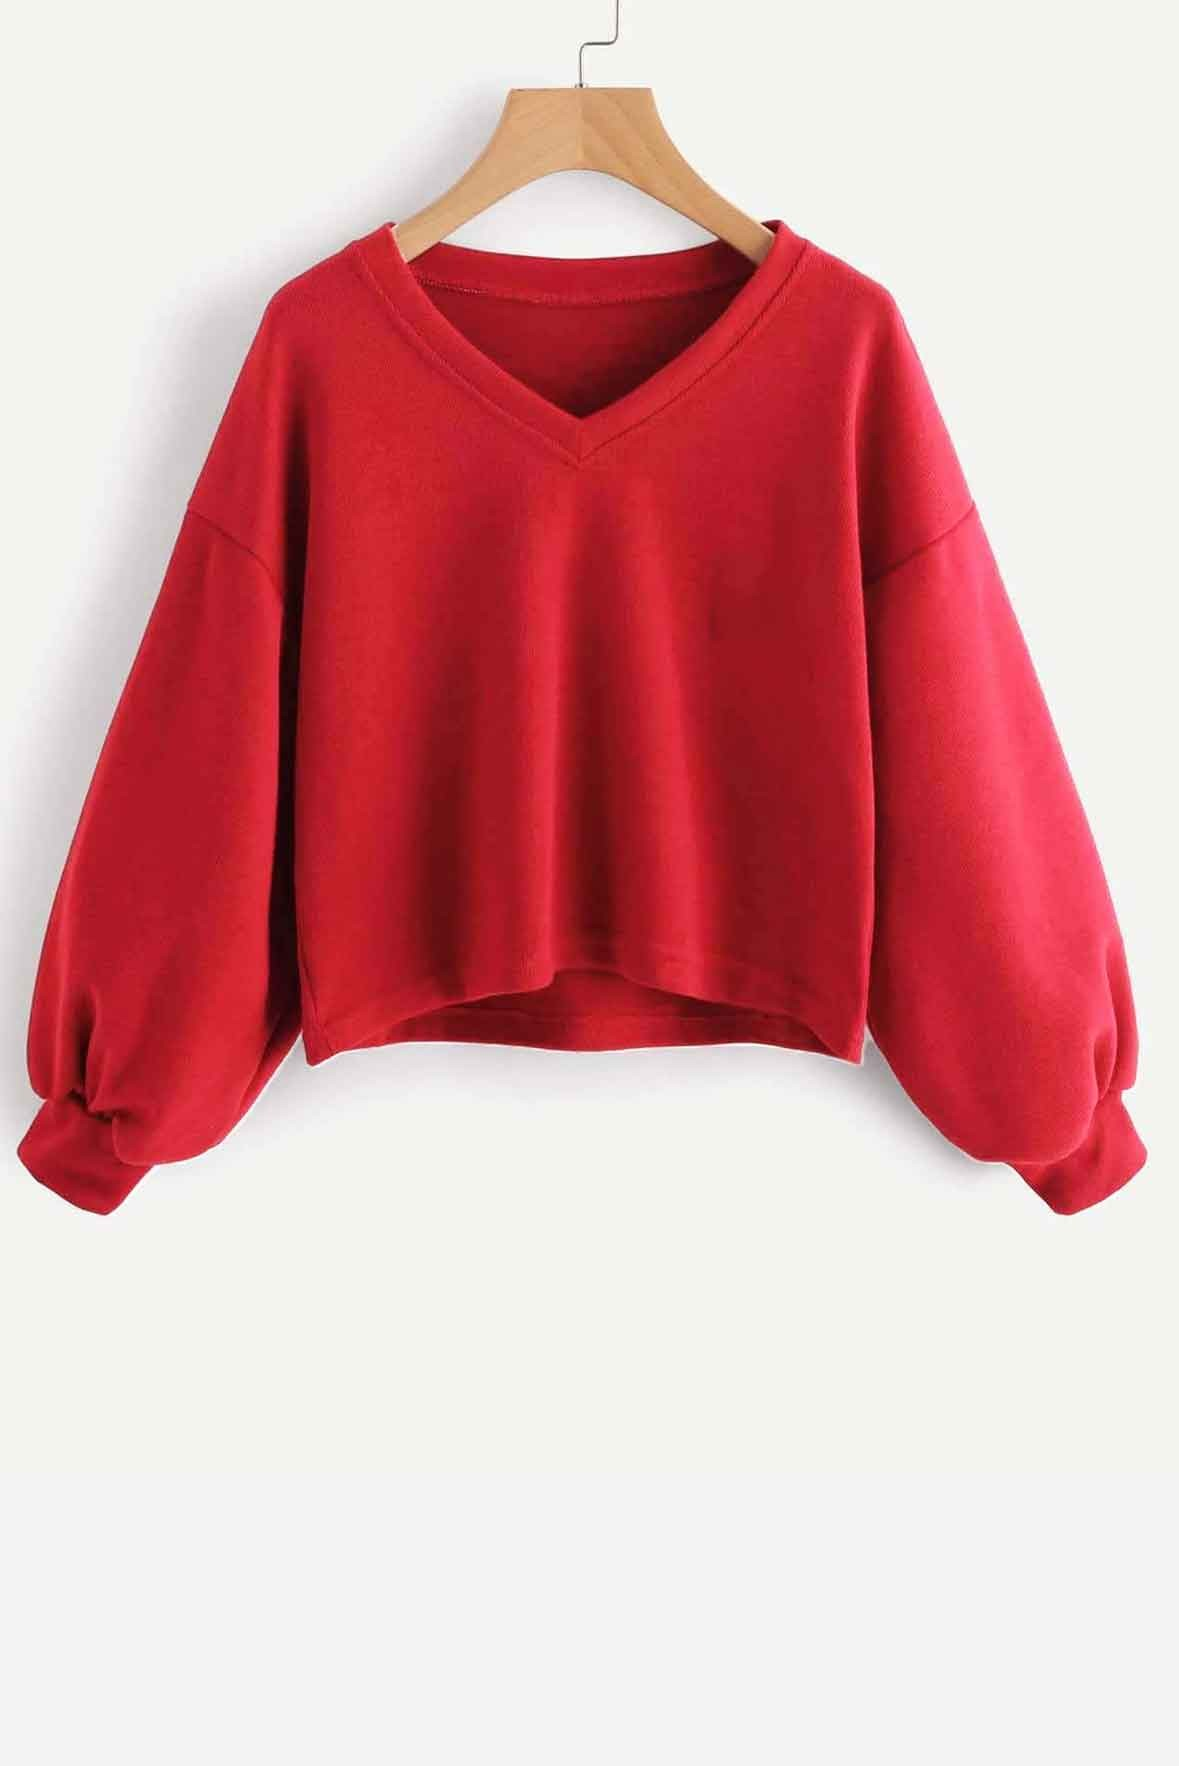 Solid Casual V neck Lantern Sleeve Sweatshirt Red